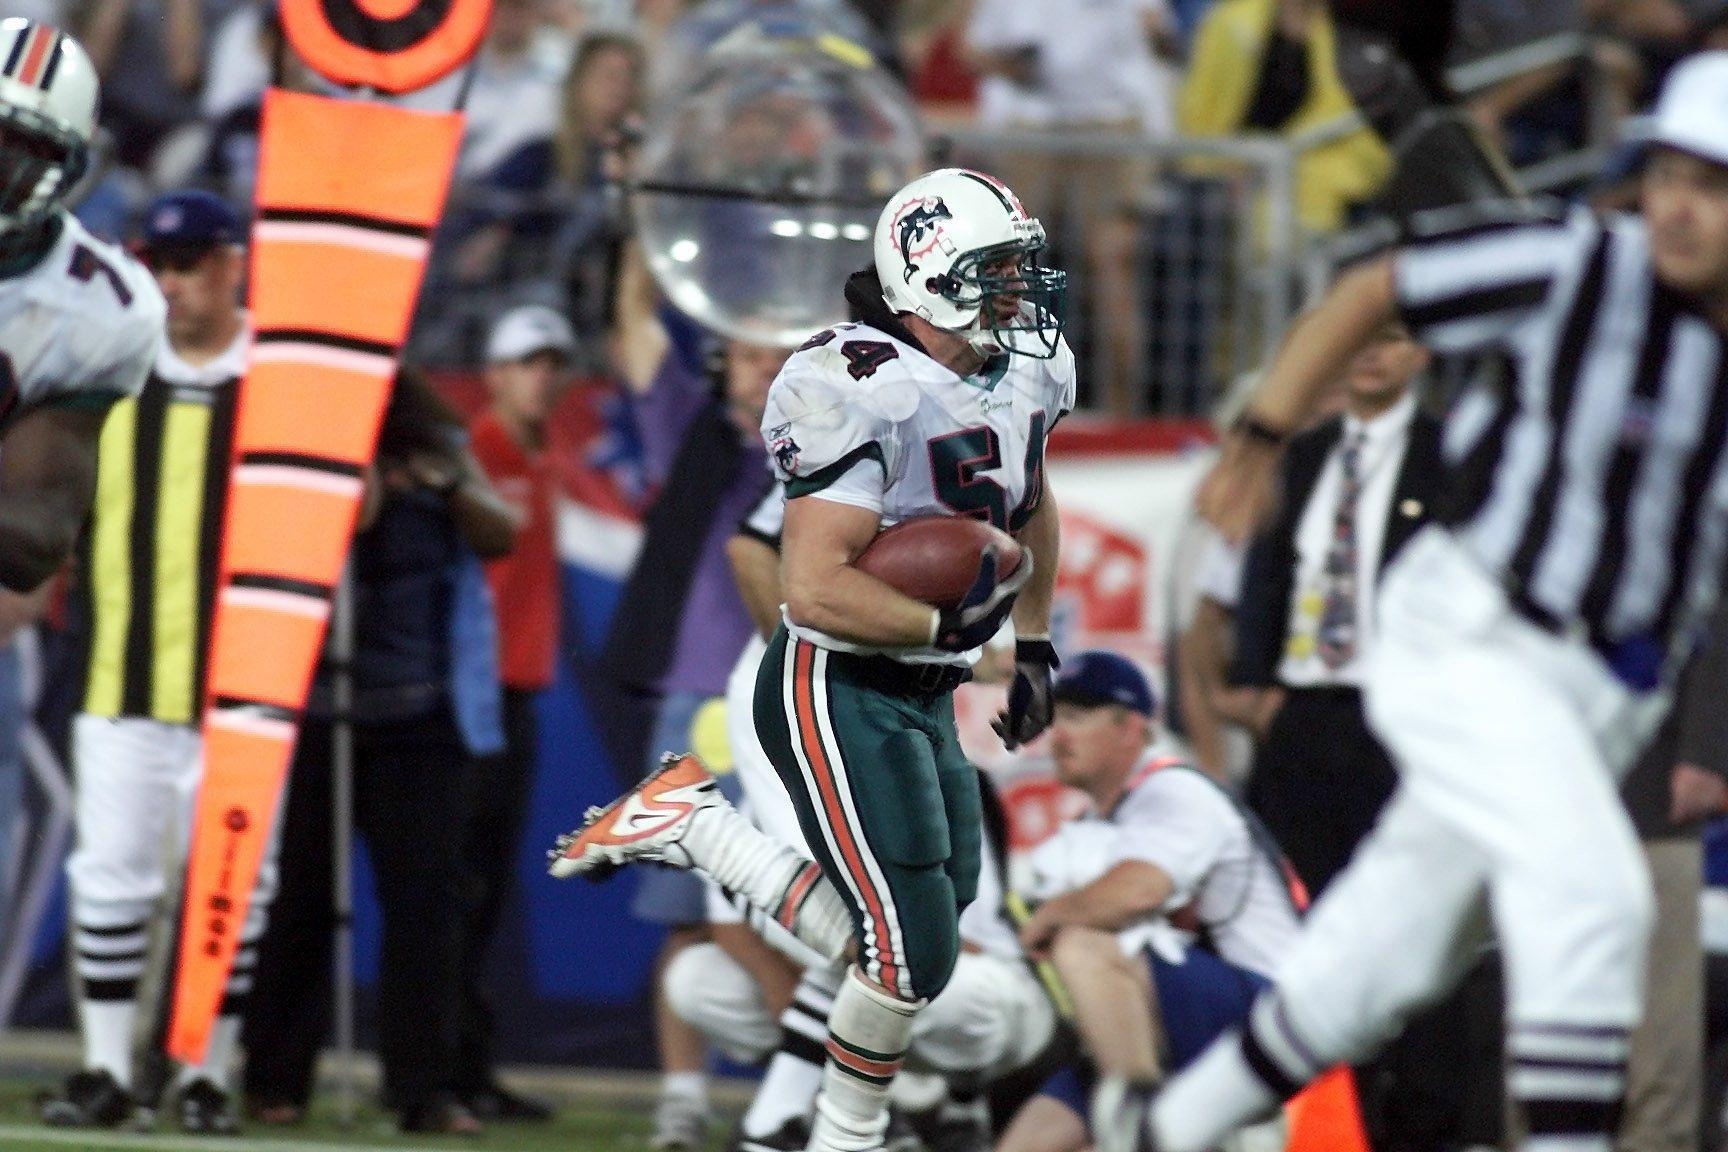 Super Bowl 2020: Zach Thomas From Miami Dolphins Misses The throughout Miami Dolphins Number Of Super Bowl Wins